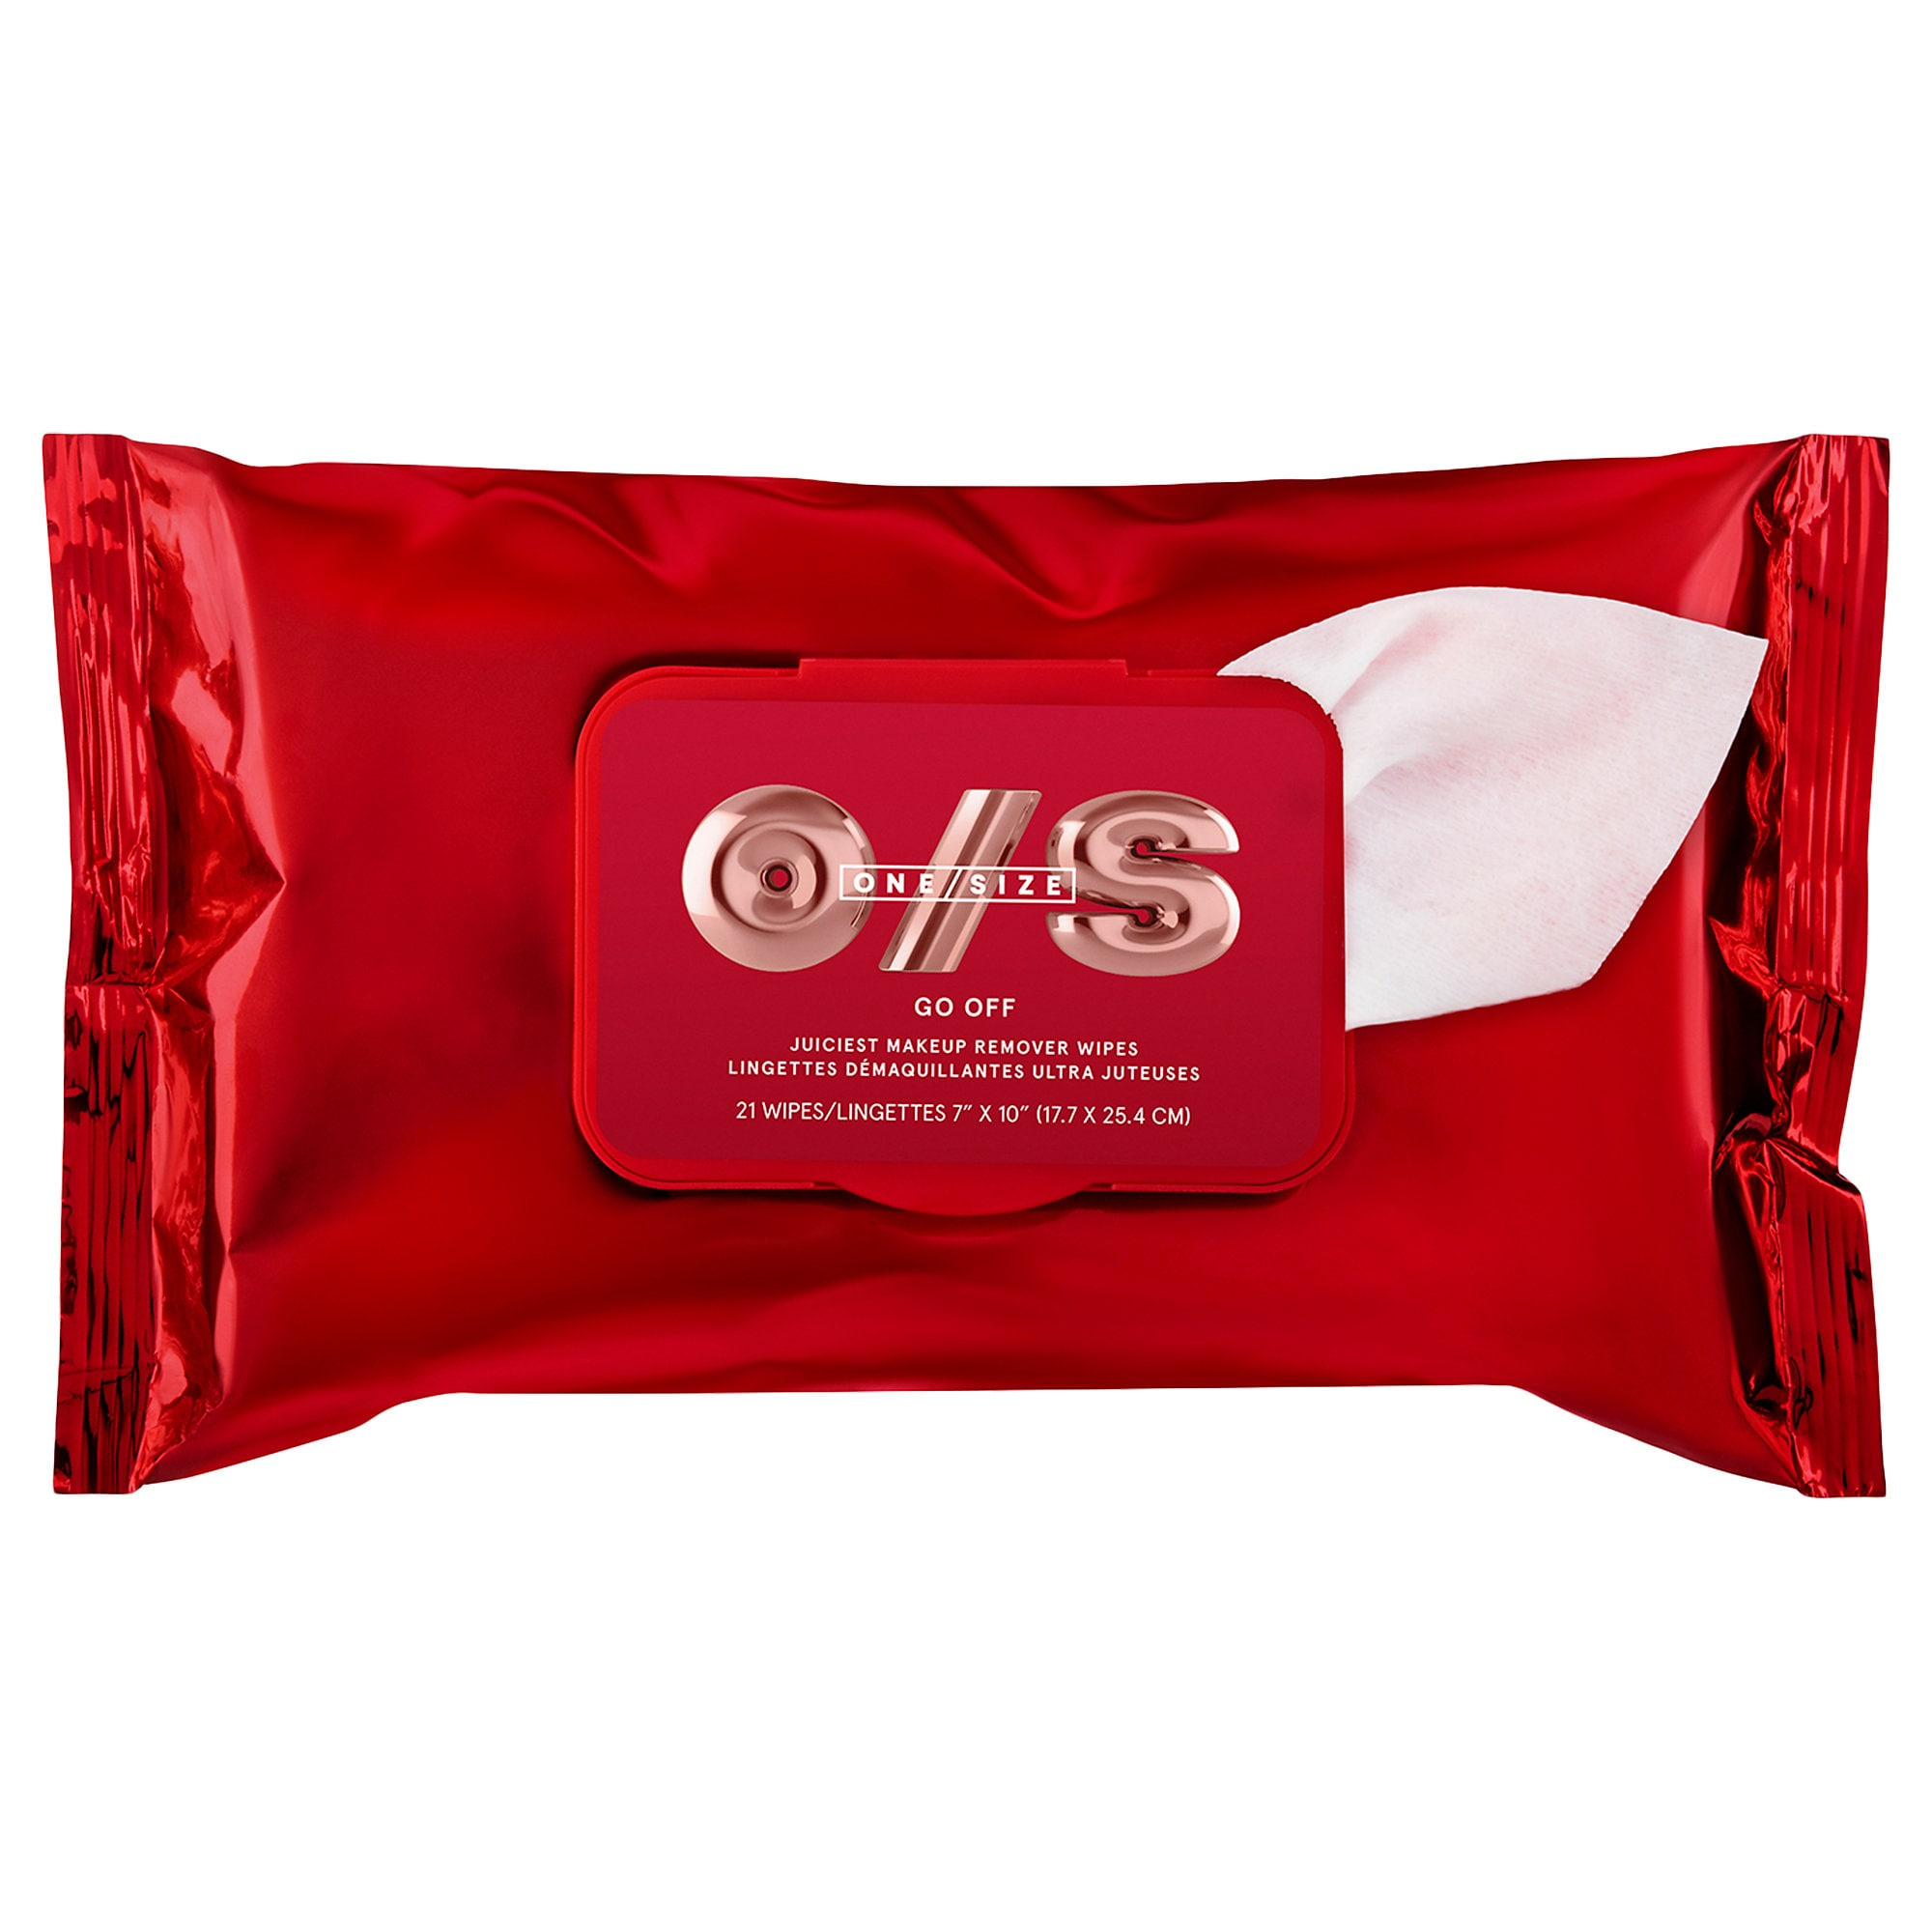 ONE/SIZE by Patrick Starrr - GO OFF Makeup Remover Wipes